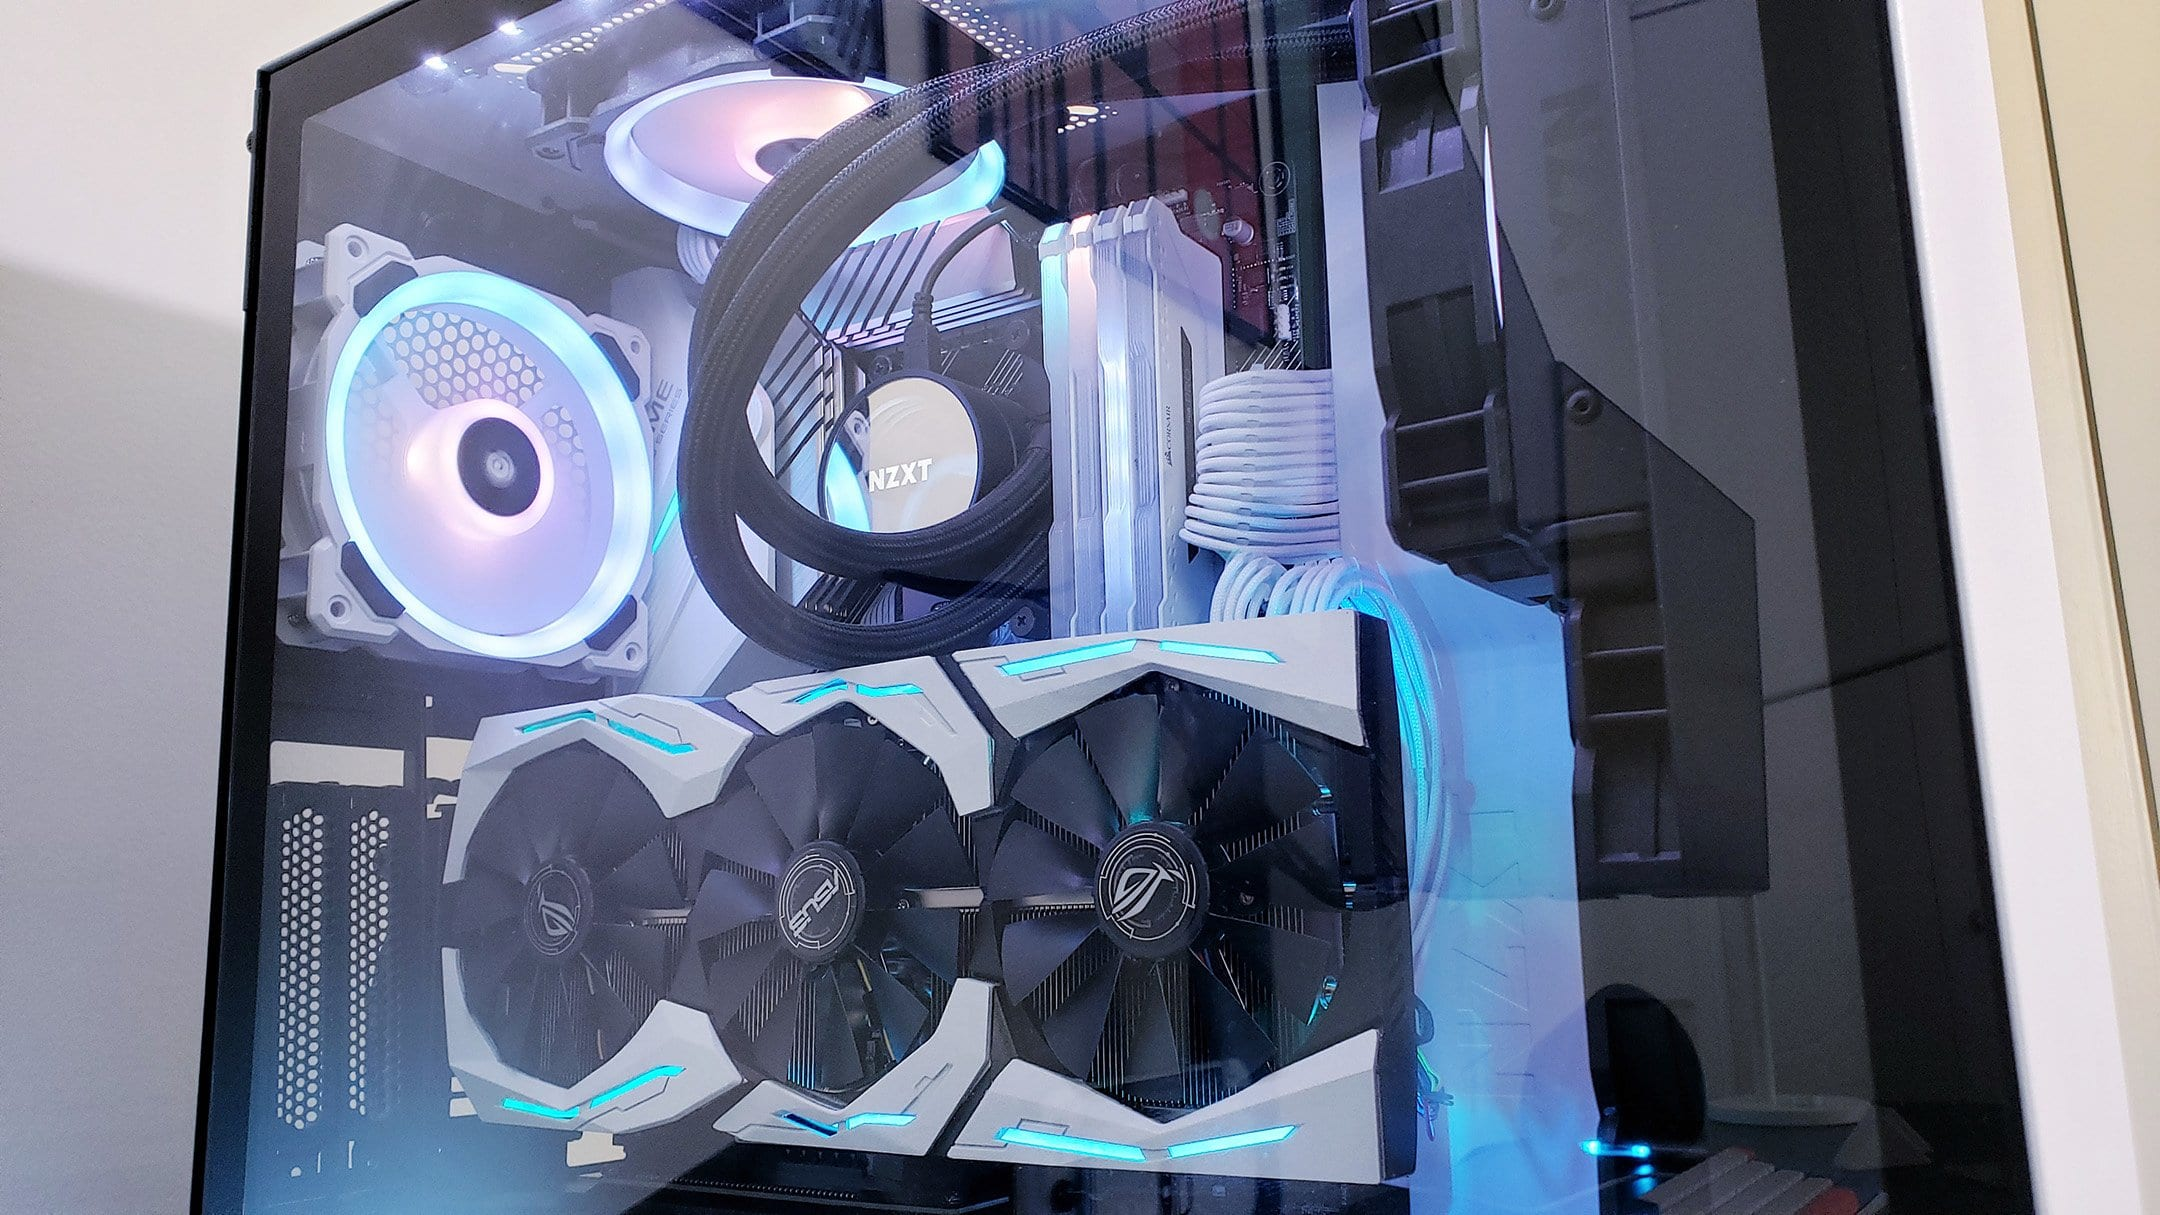 Closeup of clearmilk's PC build.